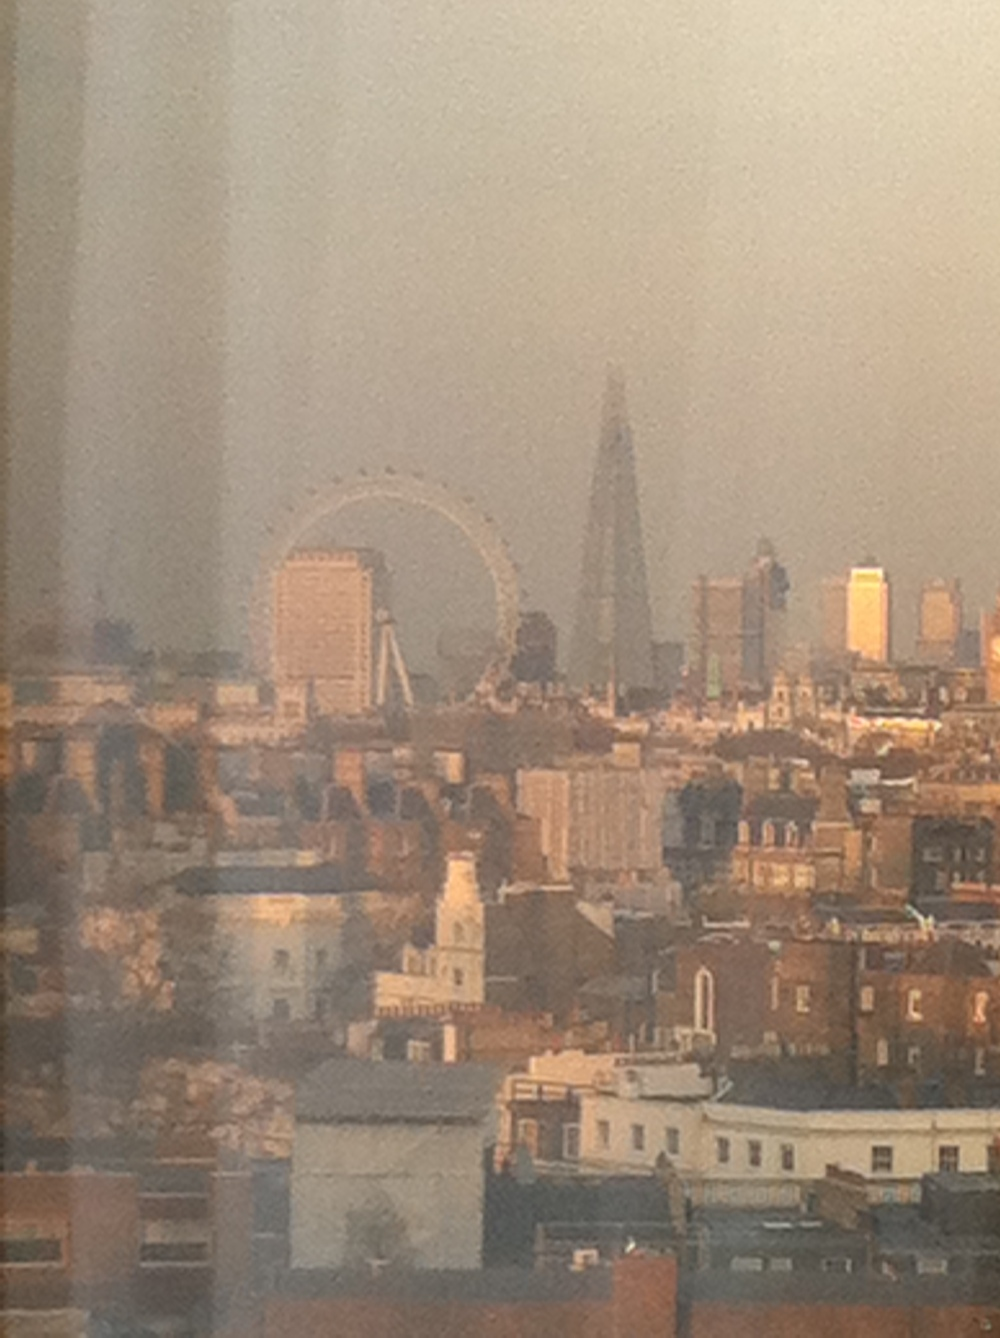 View from suite 1415, very bad quality iPhone picture but great view